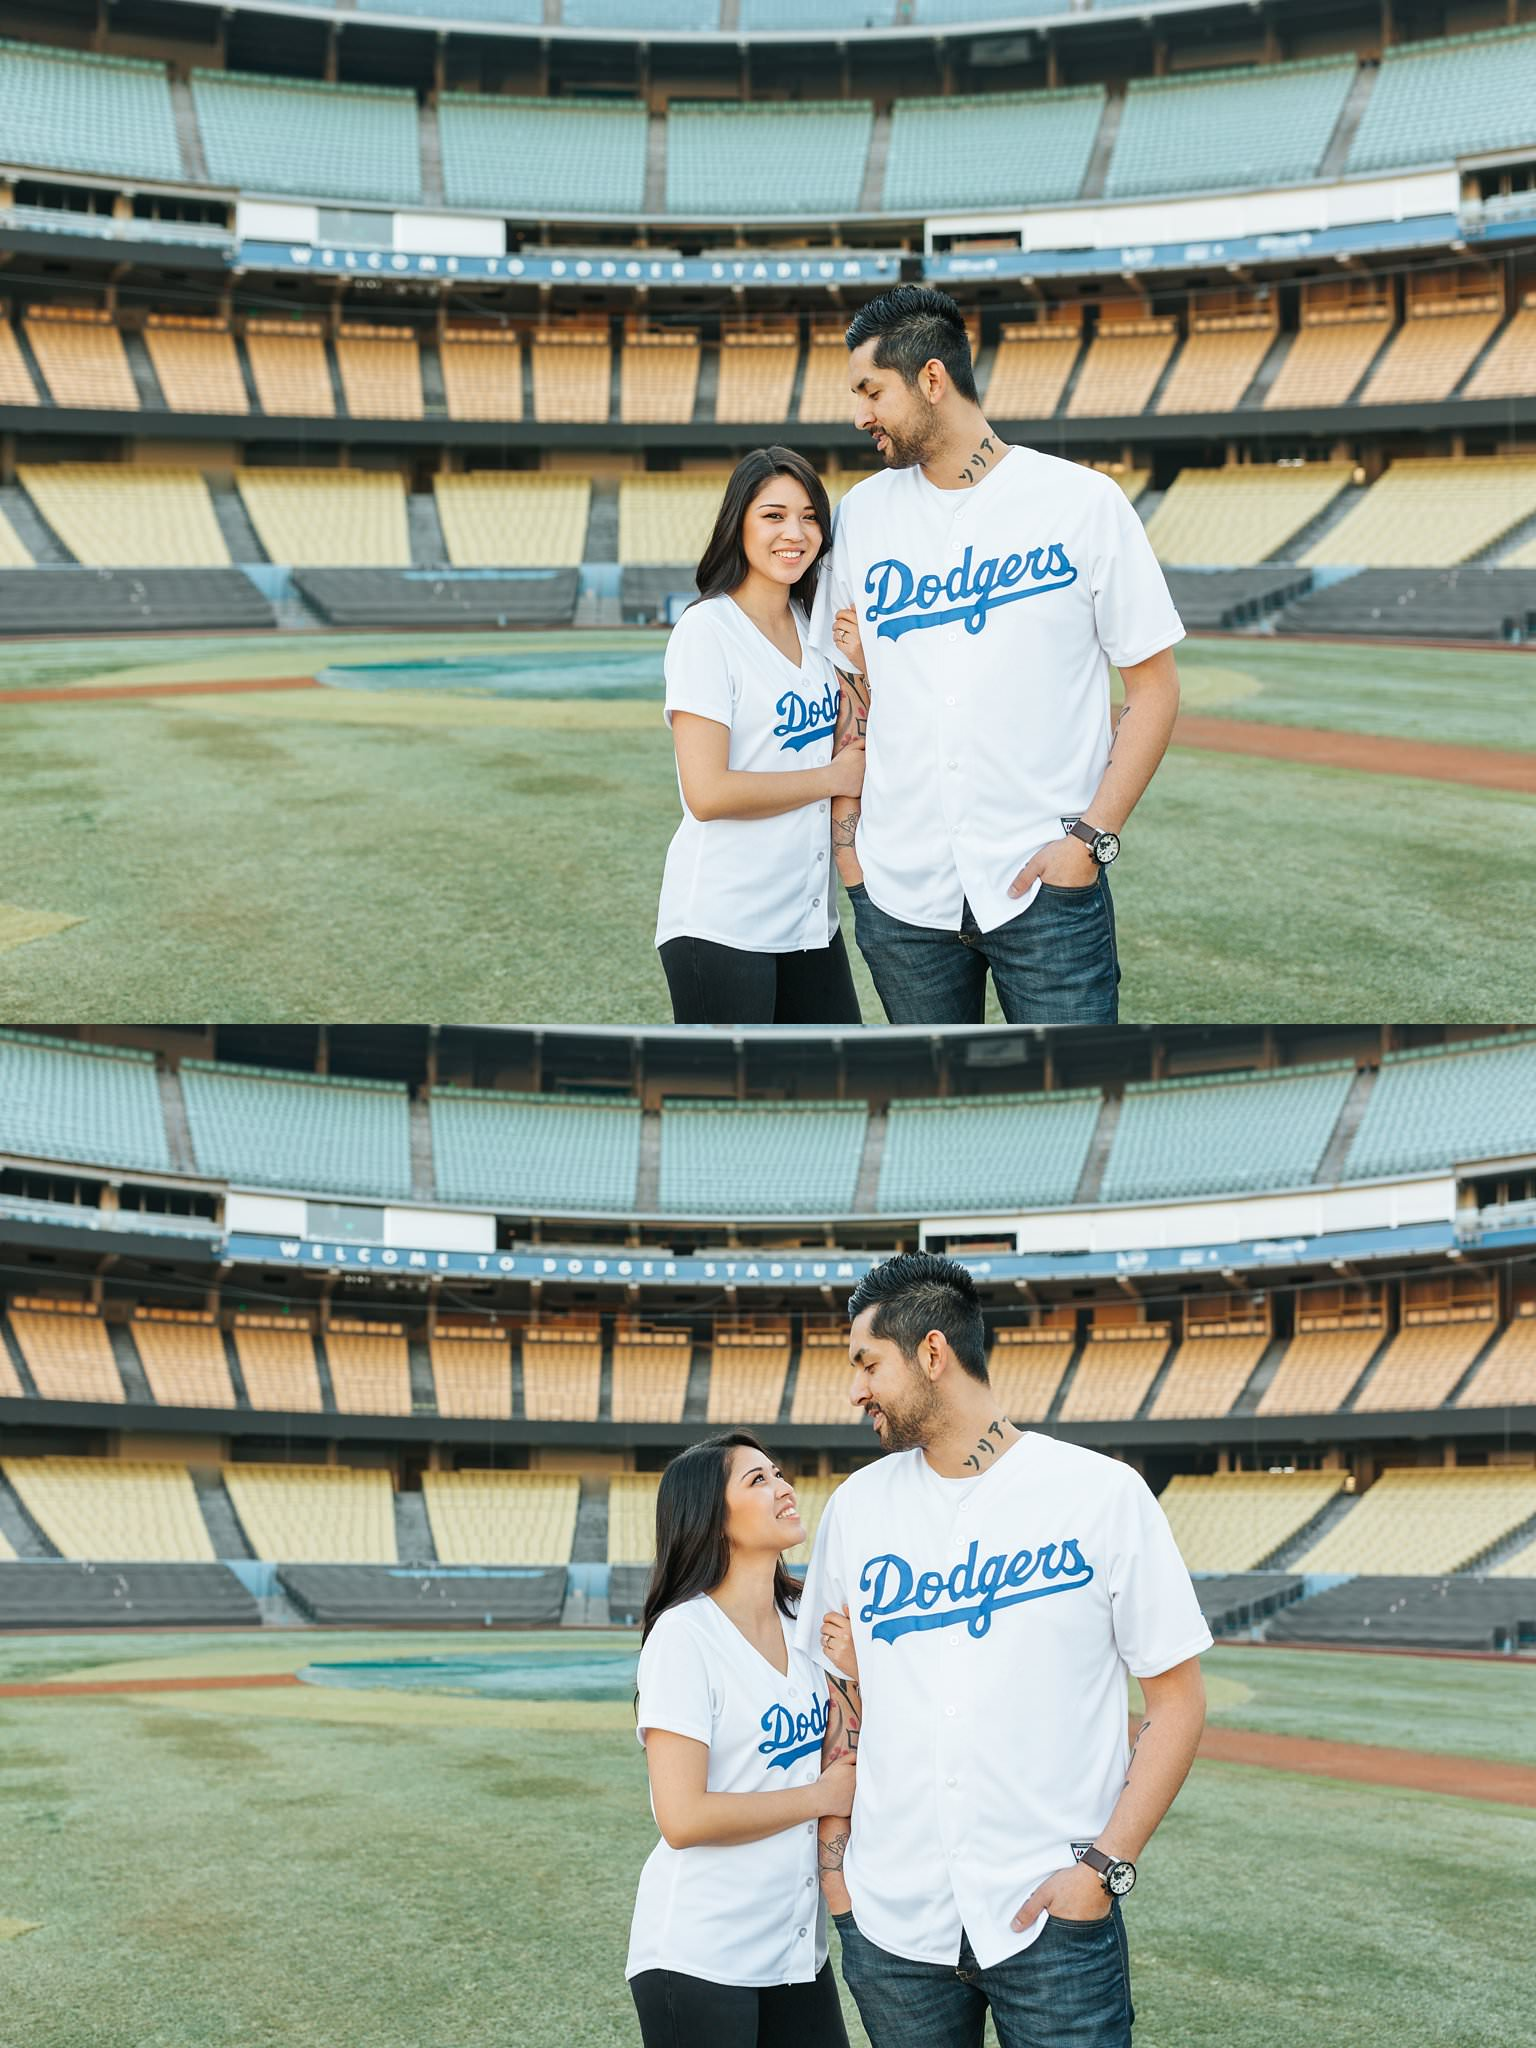 Dodger fan engagement photos - http://brittneyhannonphotography.com